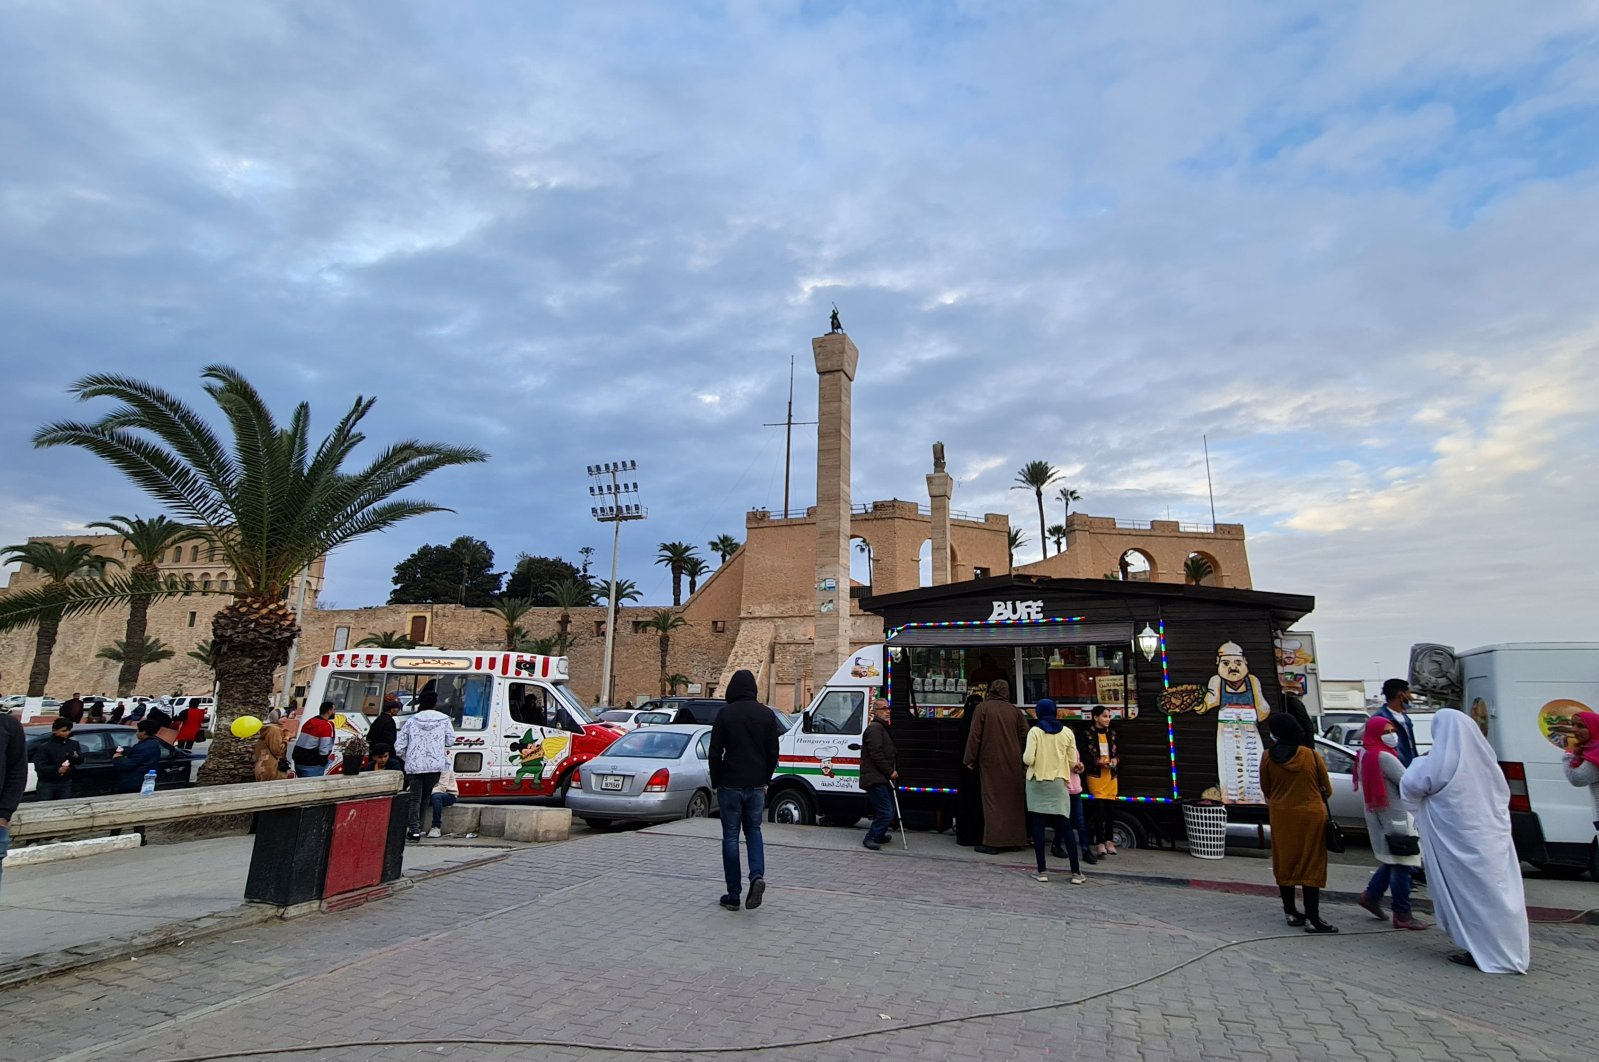 Libyans gather at Martyrs' Square in the capital Tripoli, Libya, Feb. 1, 2021. (AFP Photo)